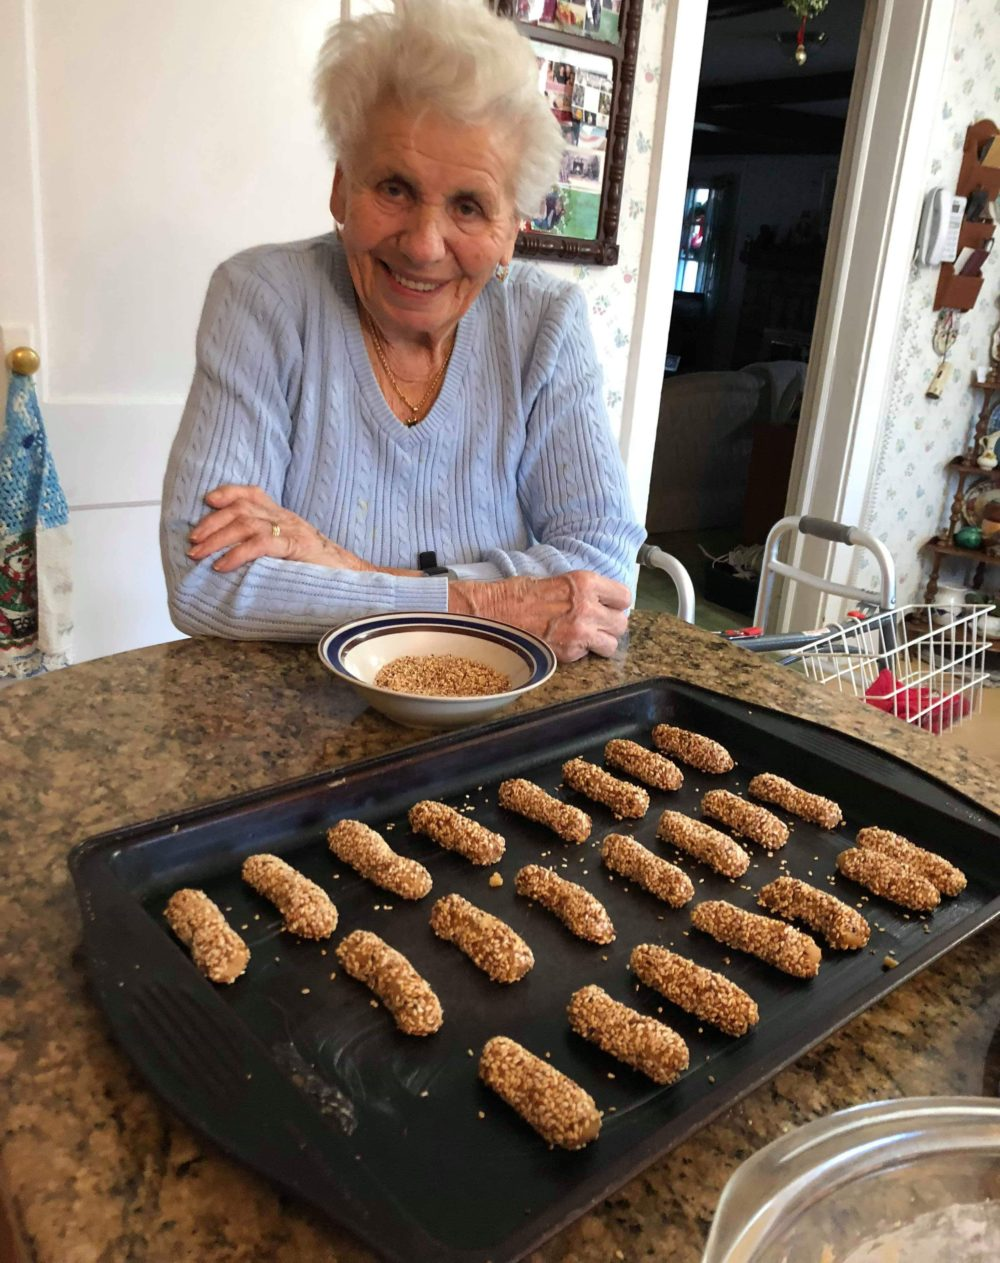 Michelina makes sesame cookies